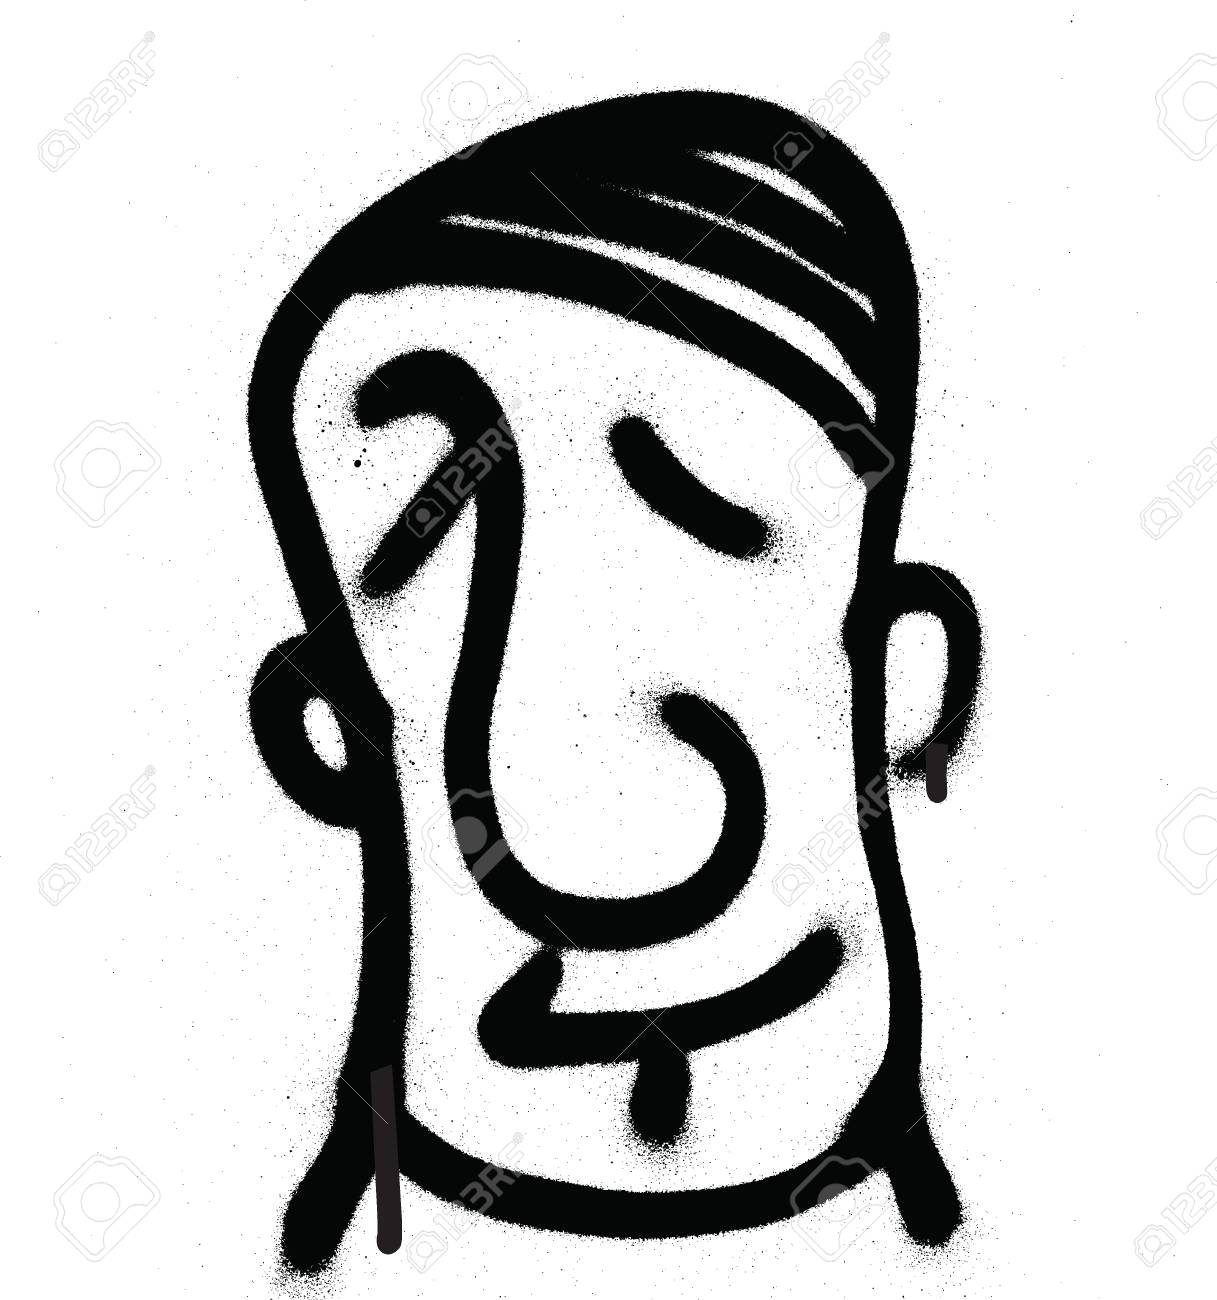 Graffiti Character Sprayed In Black On White Vector Image